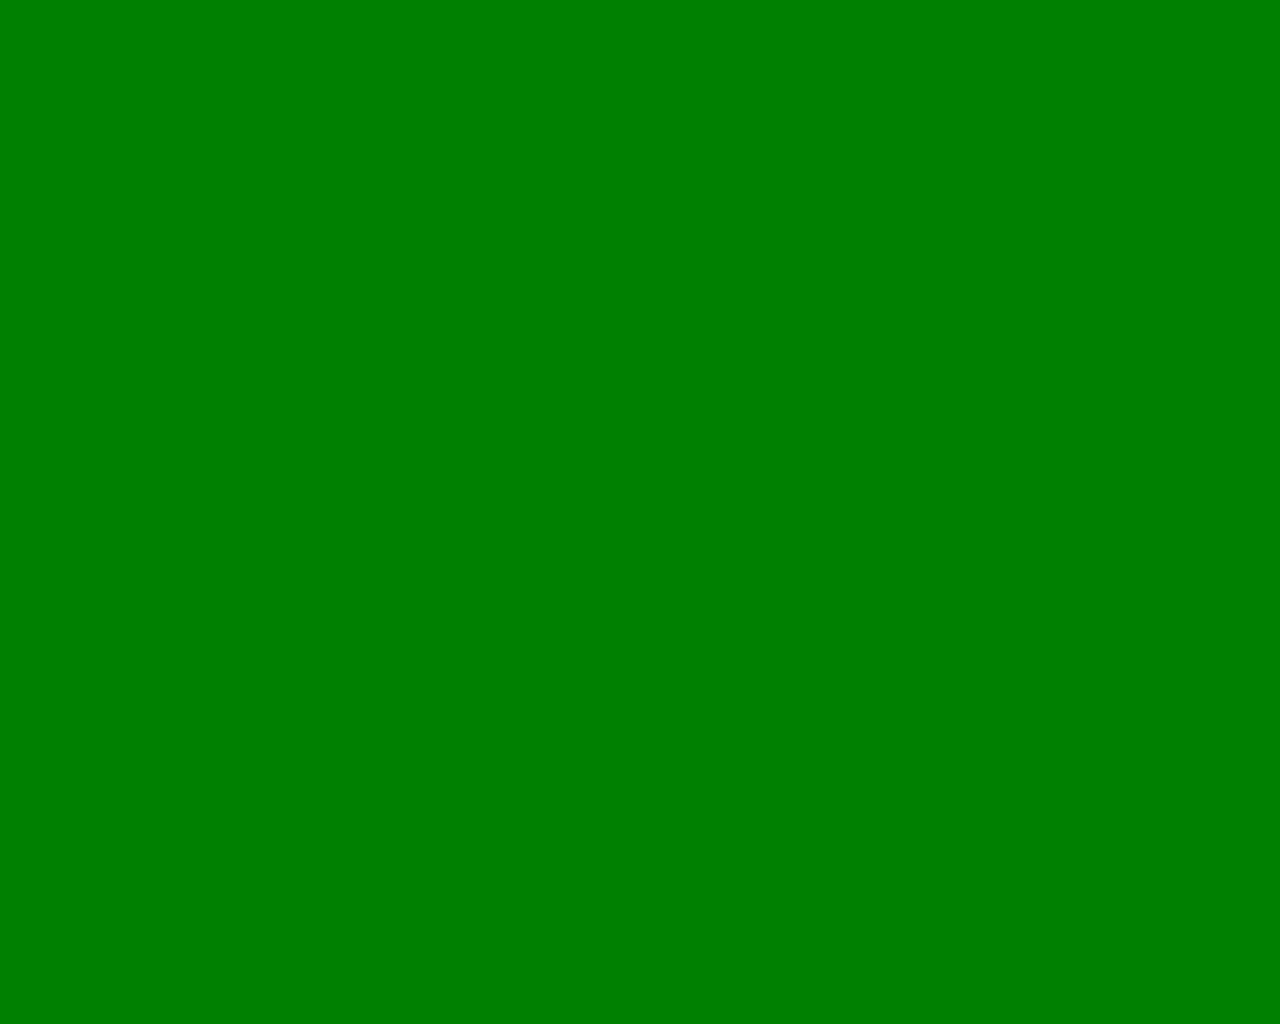 solid green images search